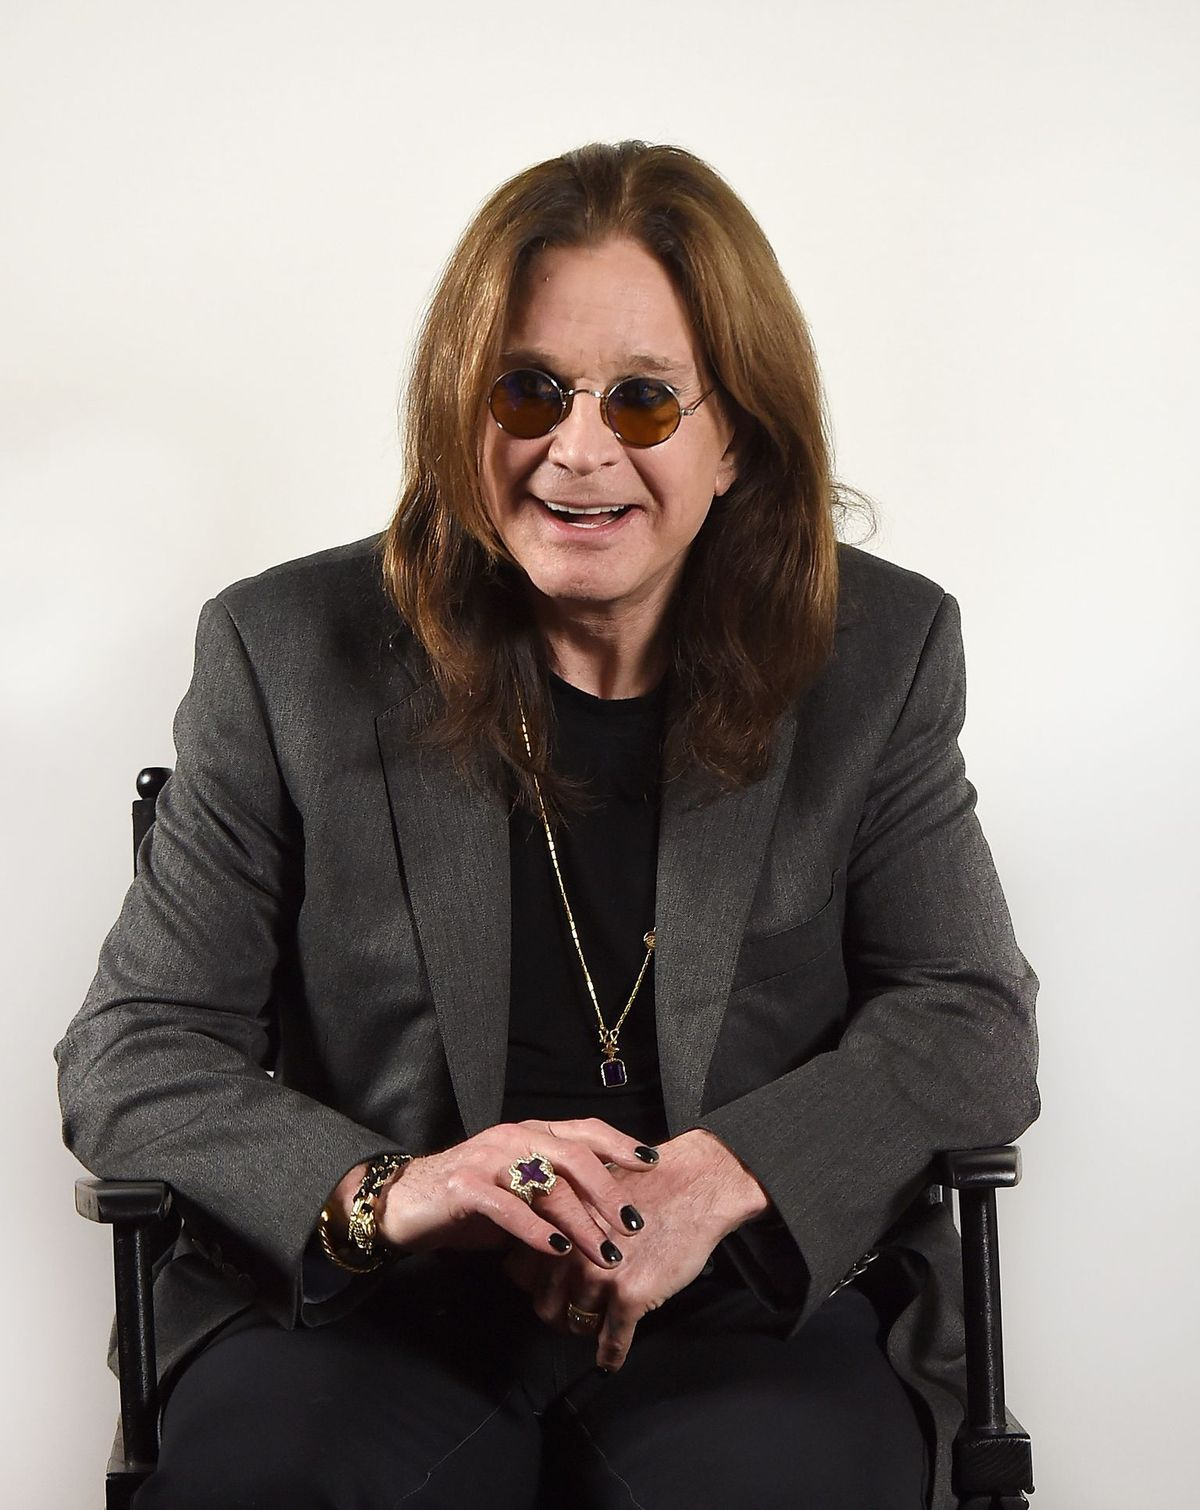 """Ozzy Osbourne Announces """"No More Tours 2"""" Final World Tour at Press Conference at his Los Angeles Home on February 6, 2018 